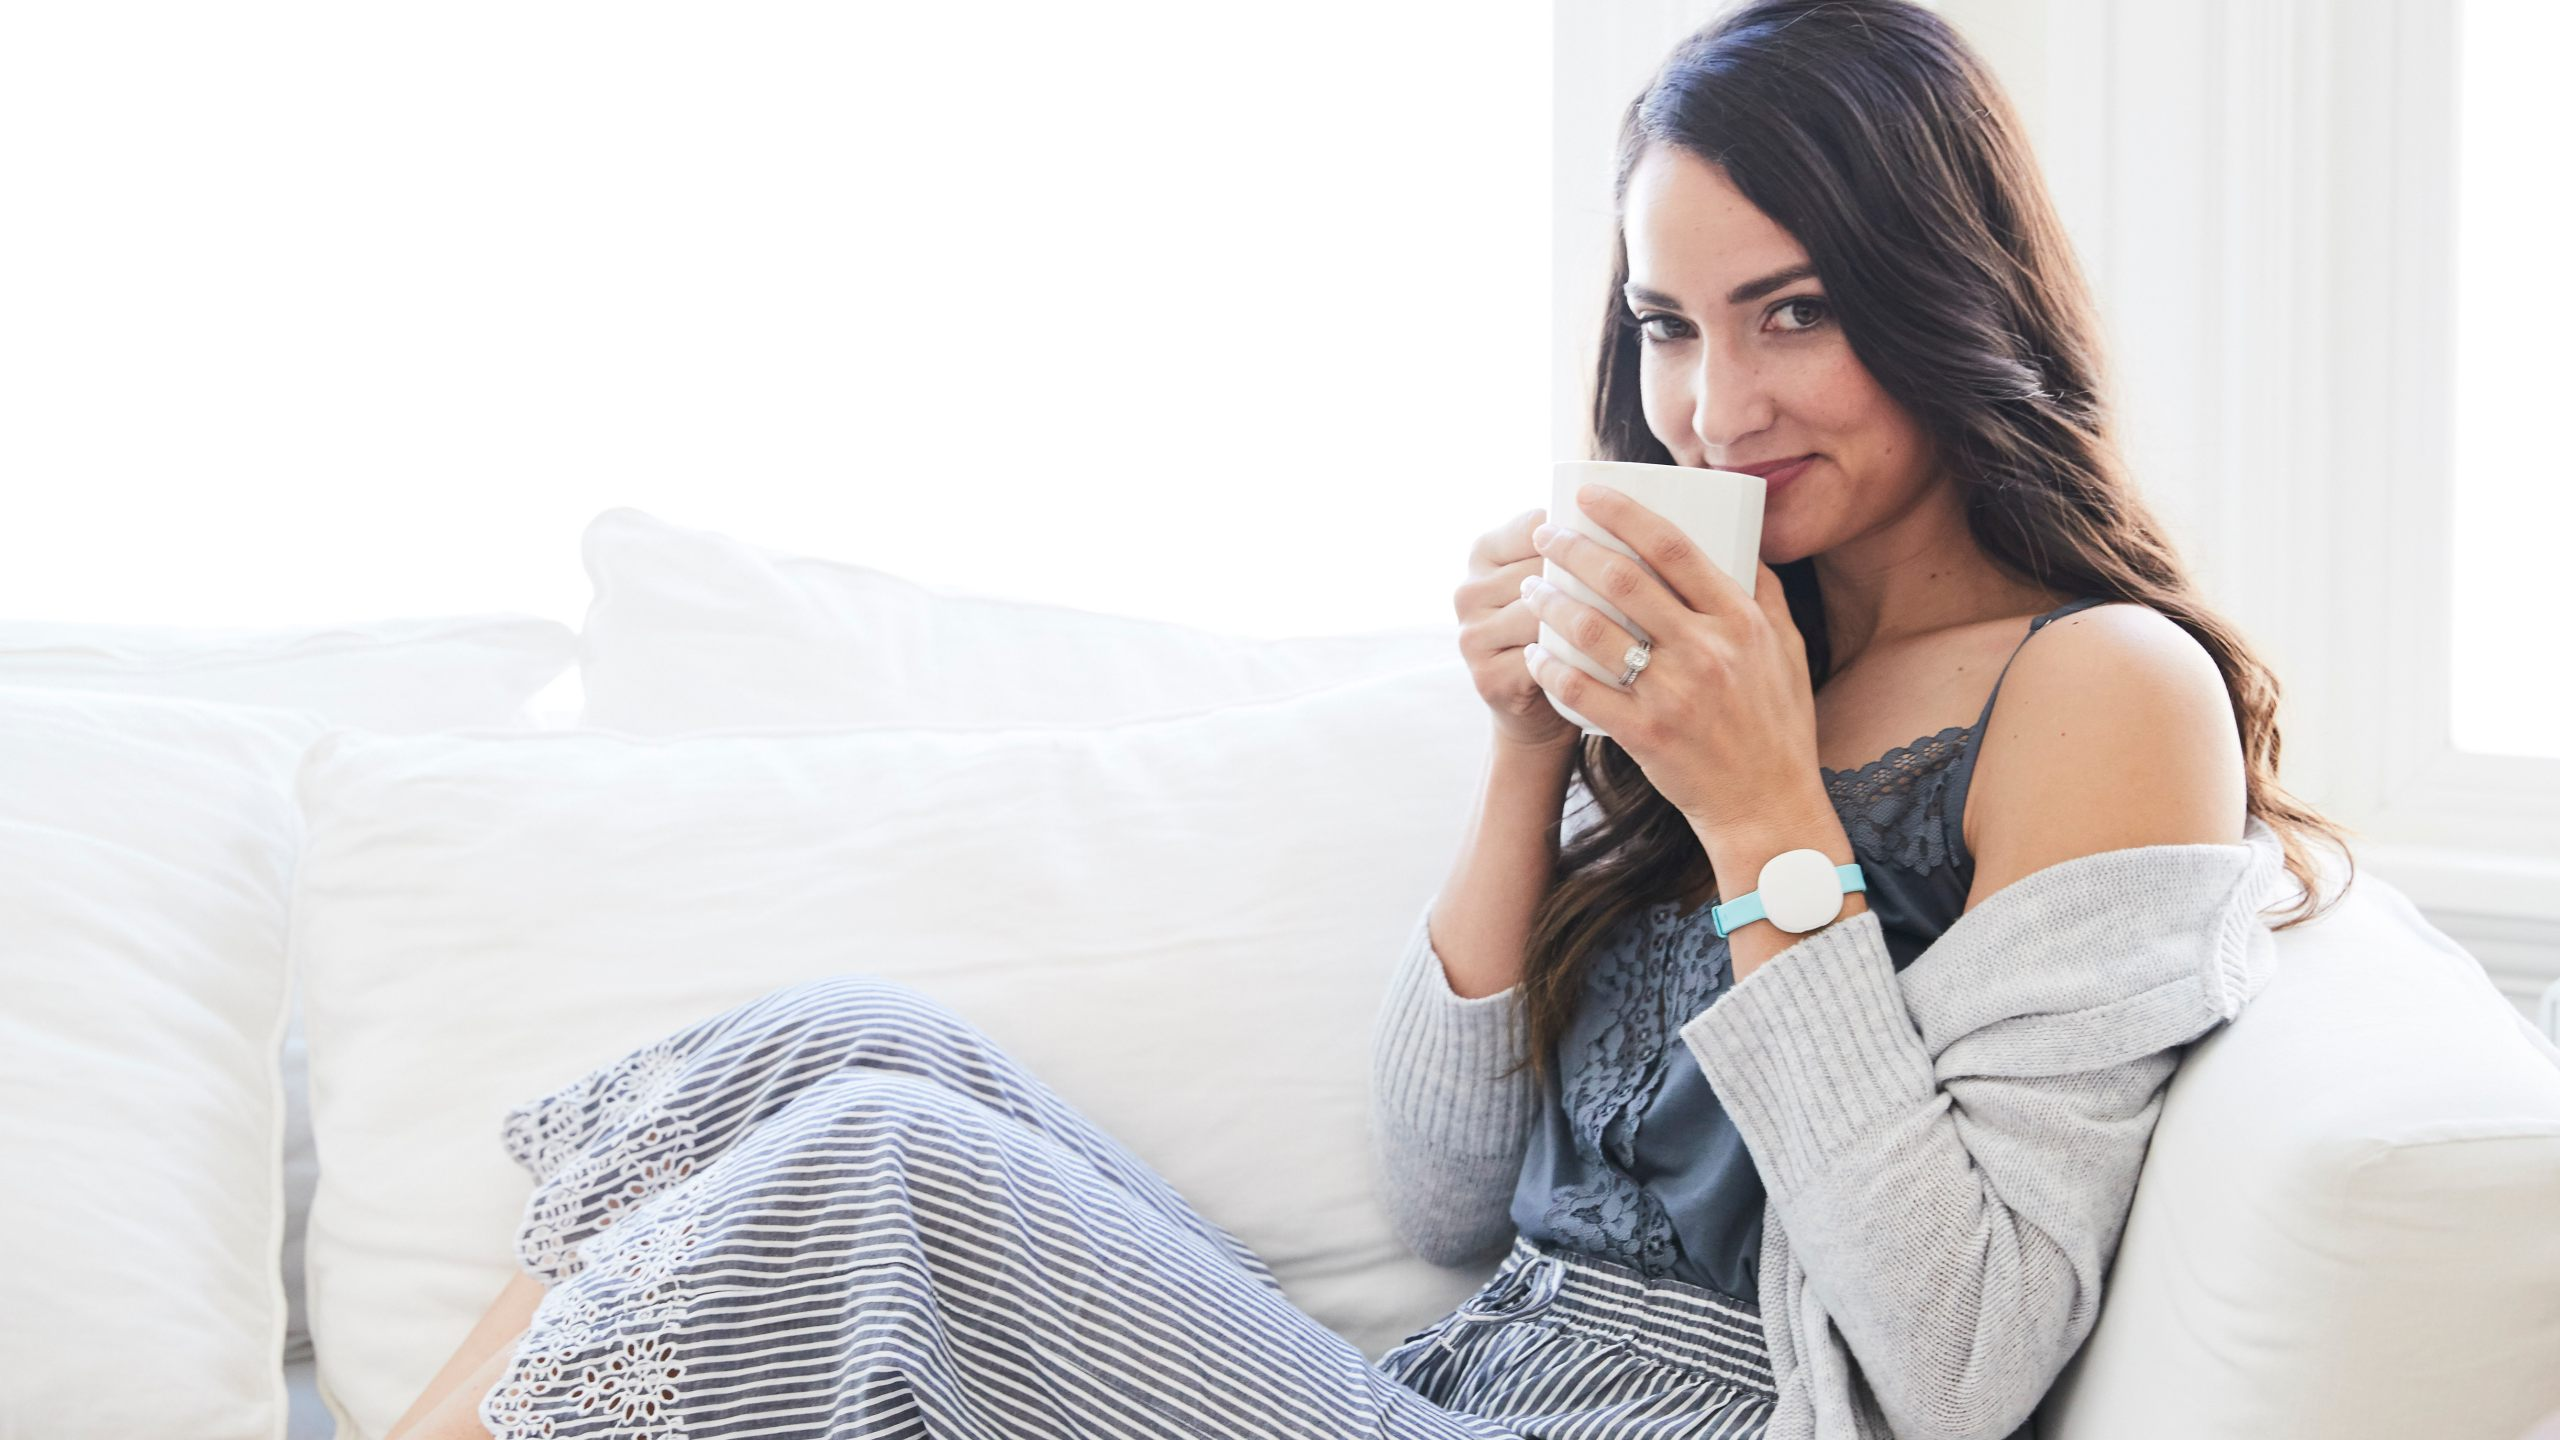 Review: The Ava bracelet helps data-obsessed women track their fertility